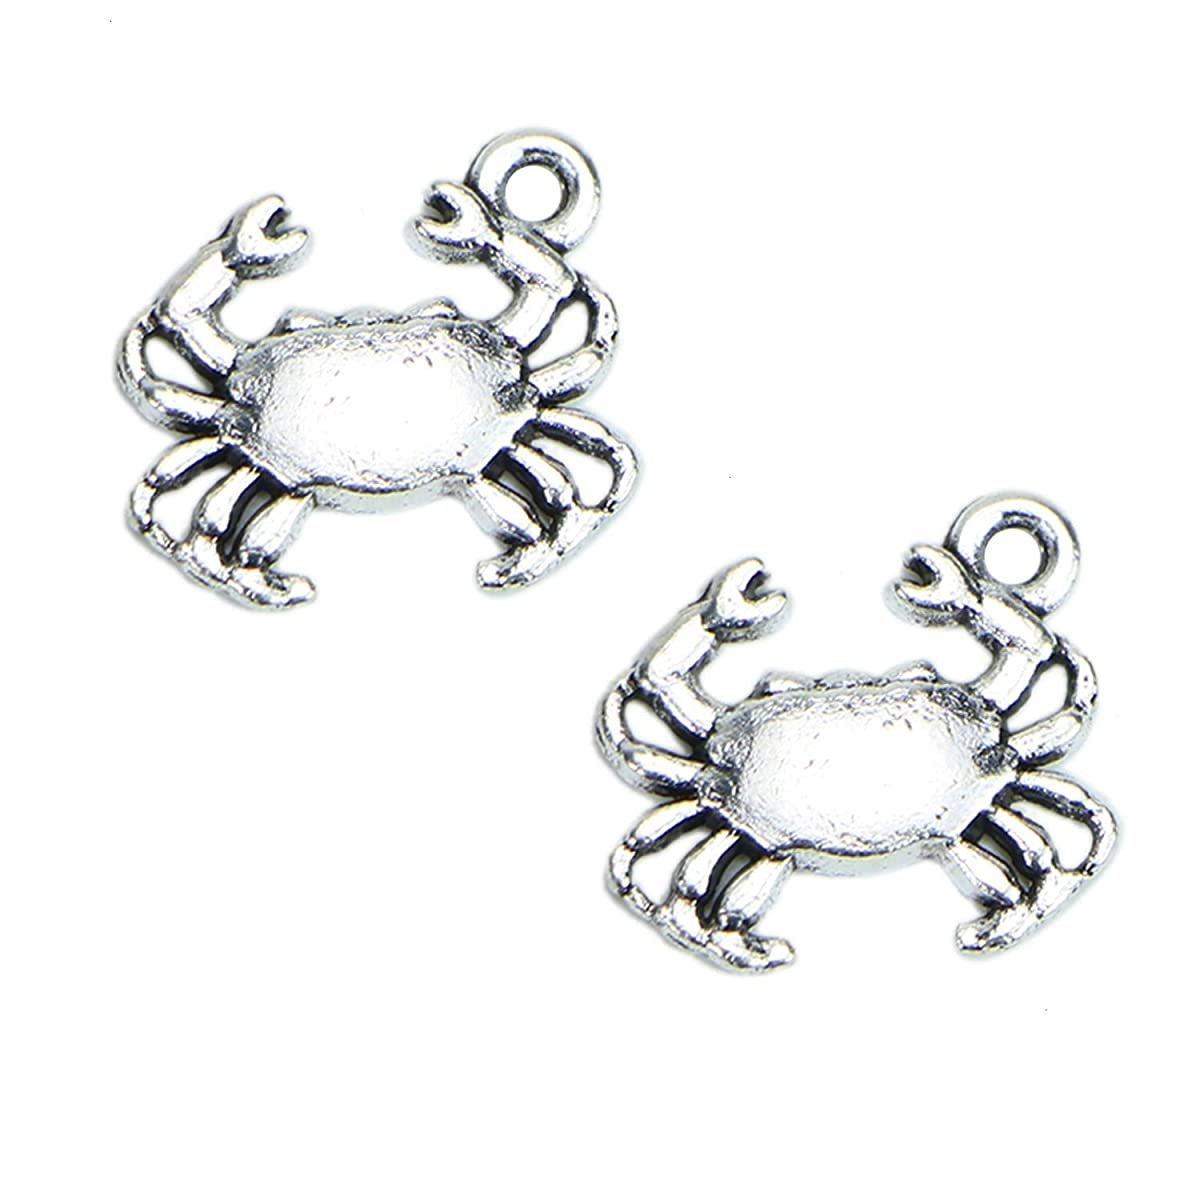 Monrocco 100 Pack Antique Silver Double Sided Crab Charms Pendants Bulk Jewelry Findings Supplies for Bracelets Jewelry Making